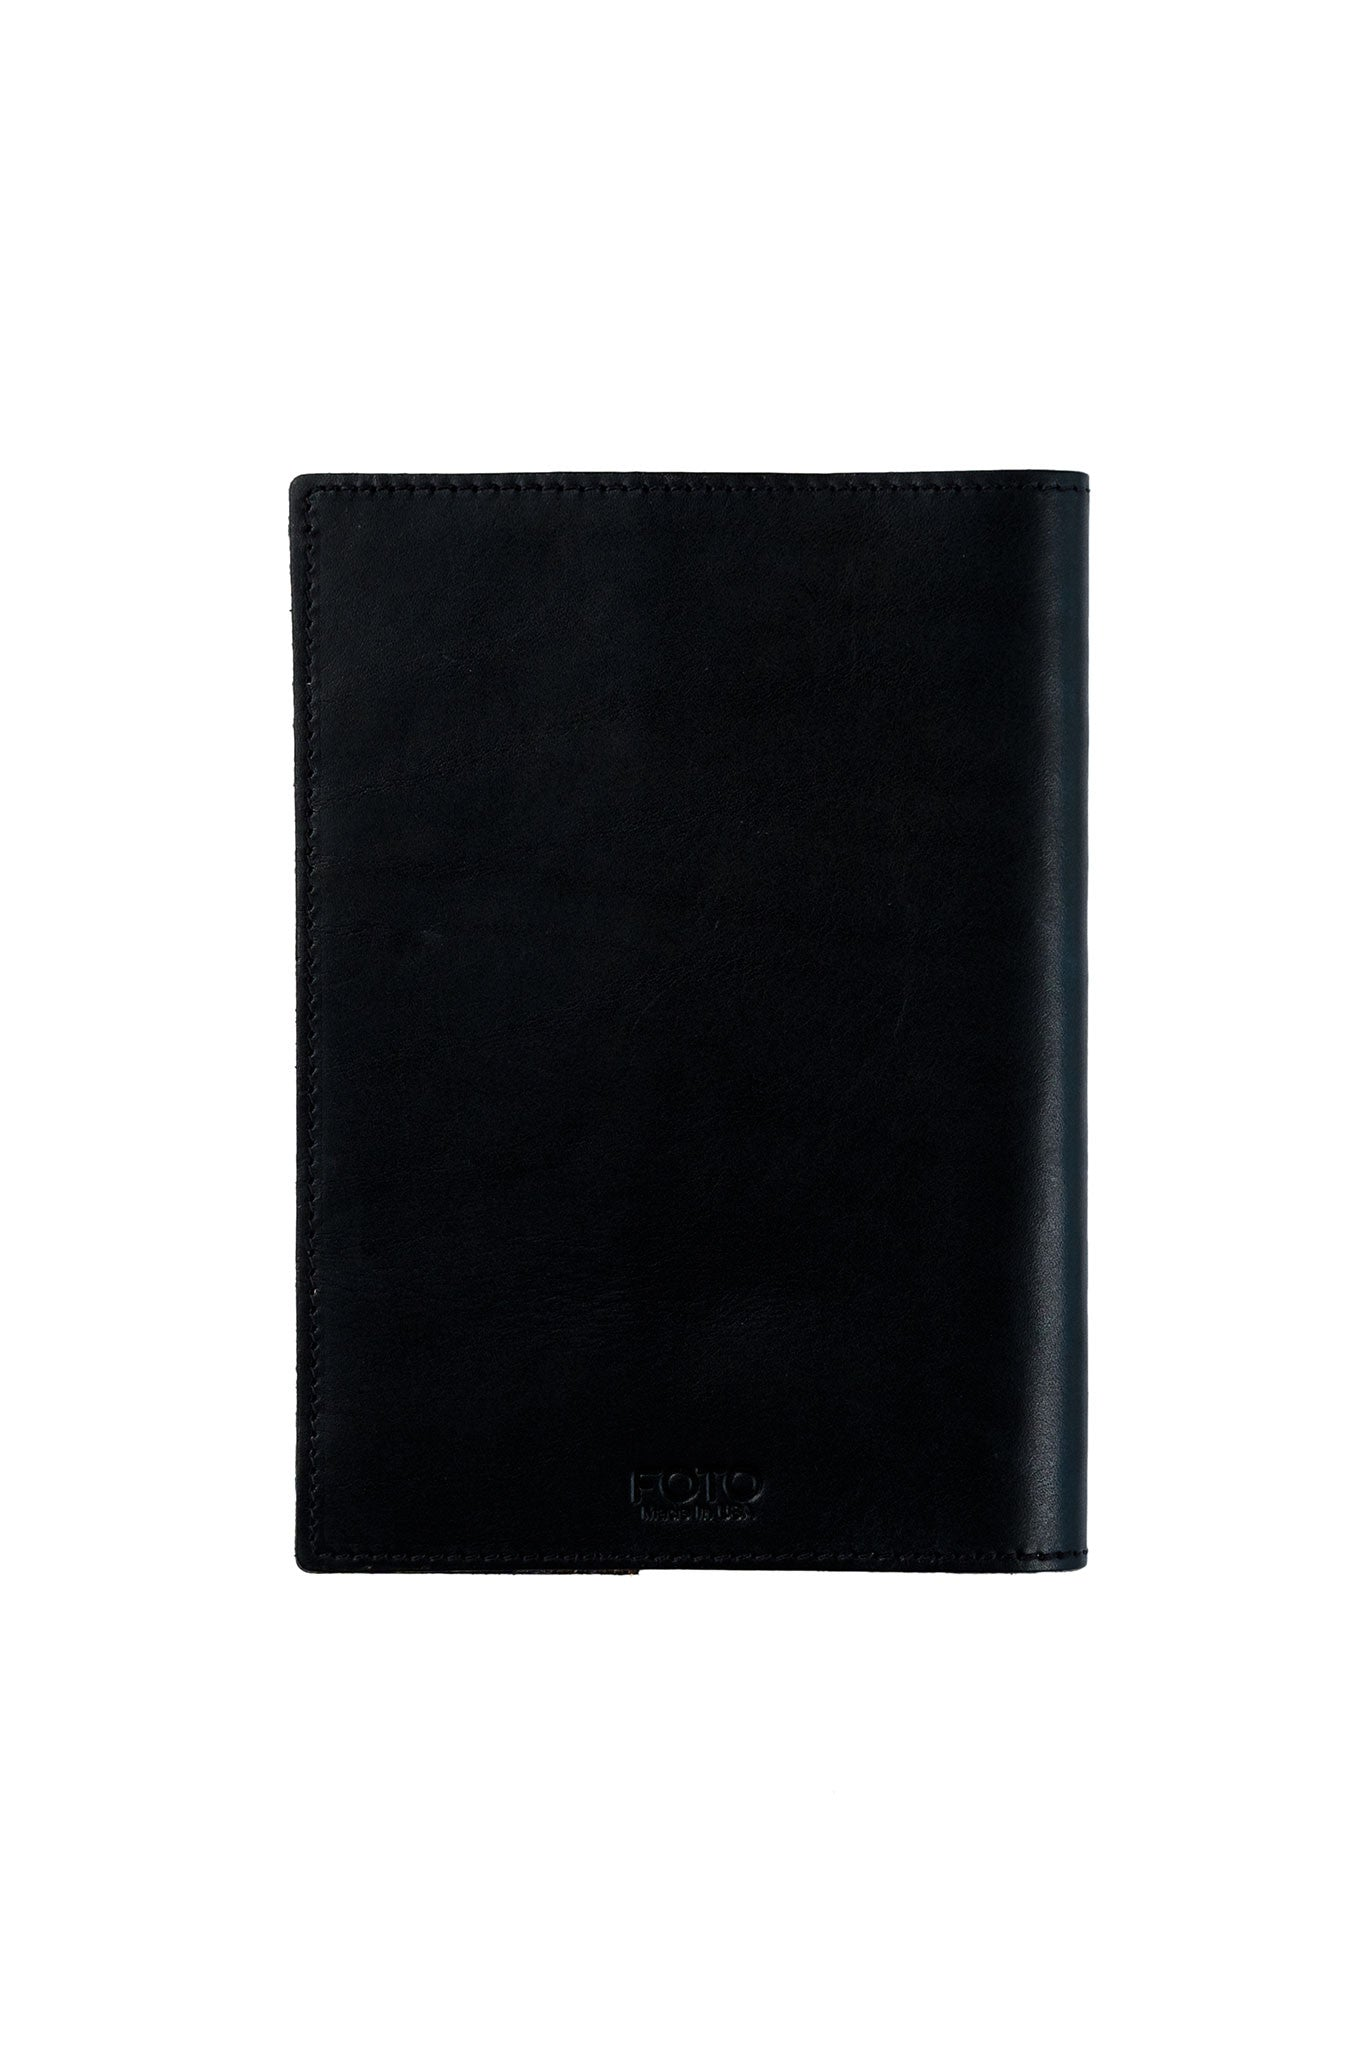 FOTO | Black Leather Journal - refillable genuine leather journal cover can be personalized with gold foil initials, a monogram or business logo making it the perfect personalized gift.